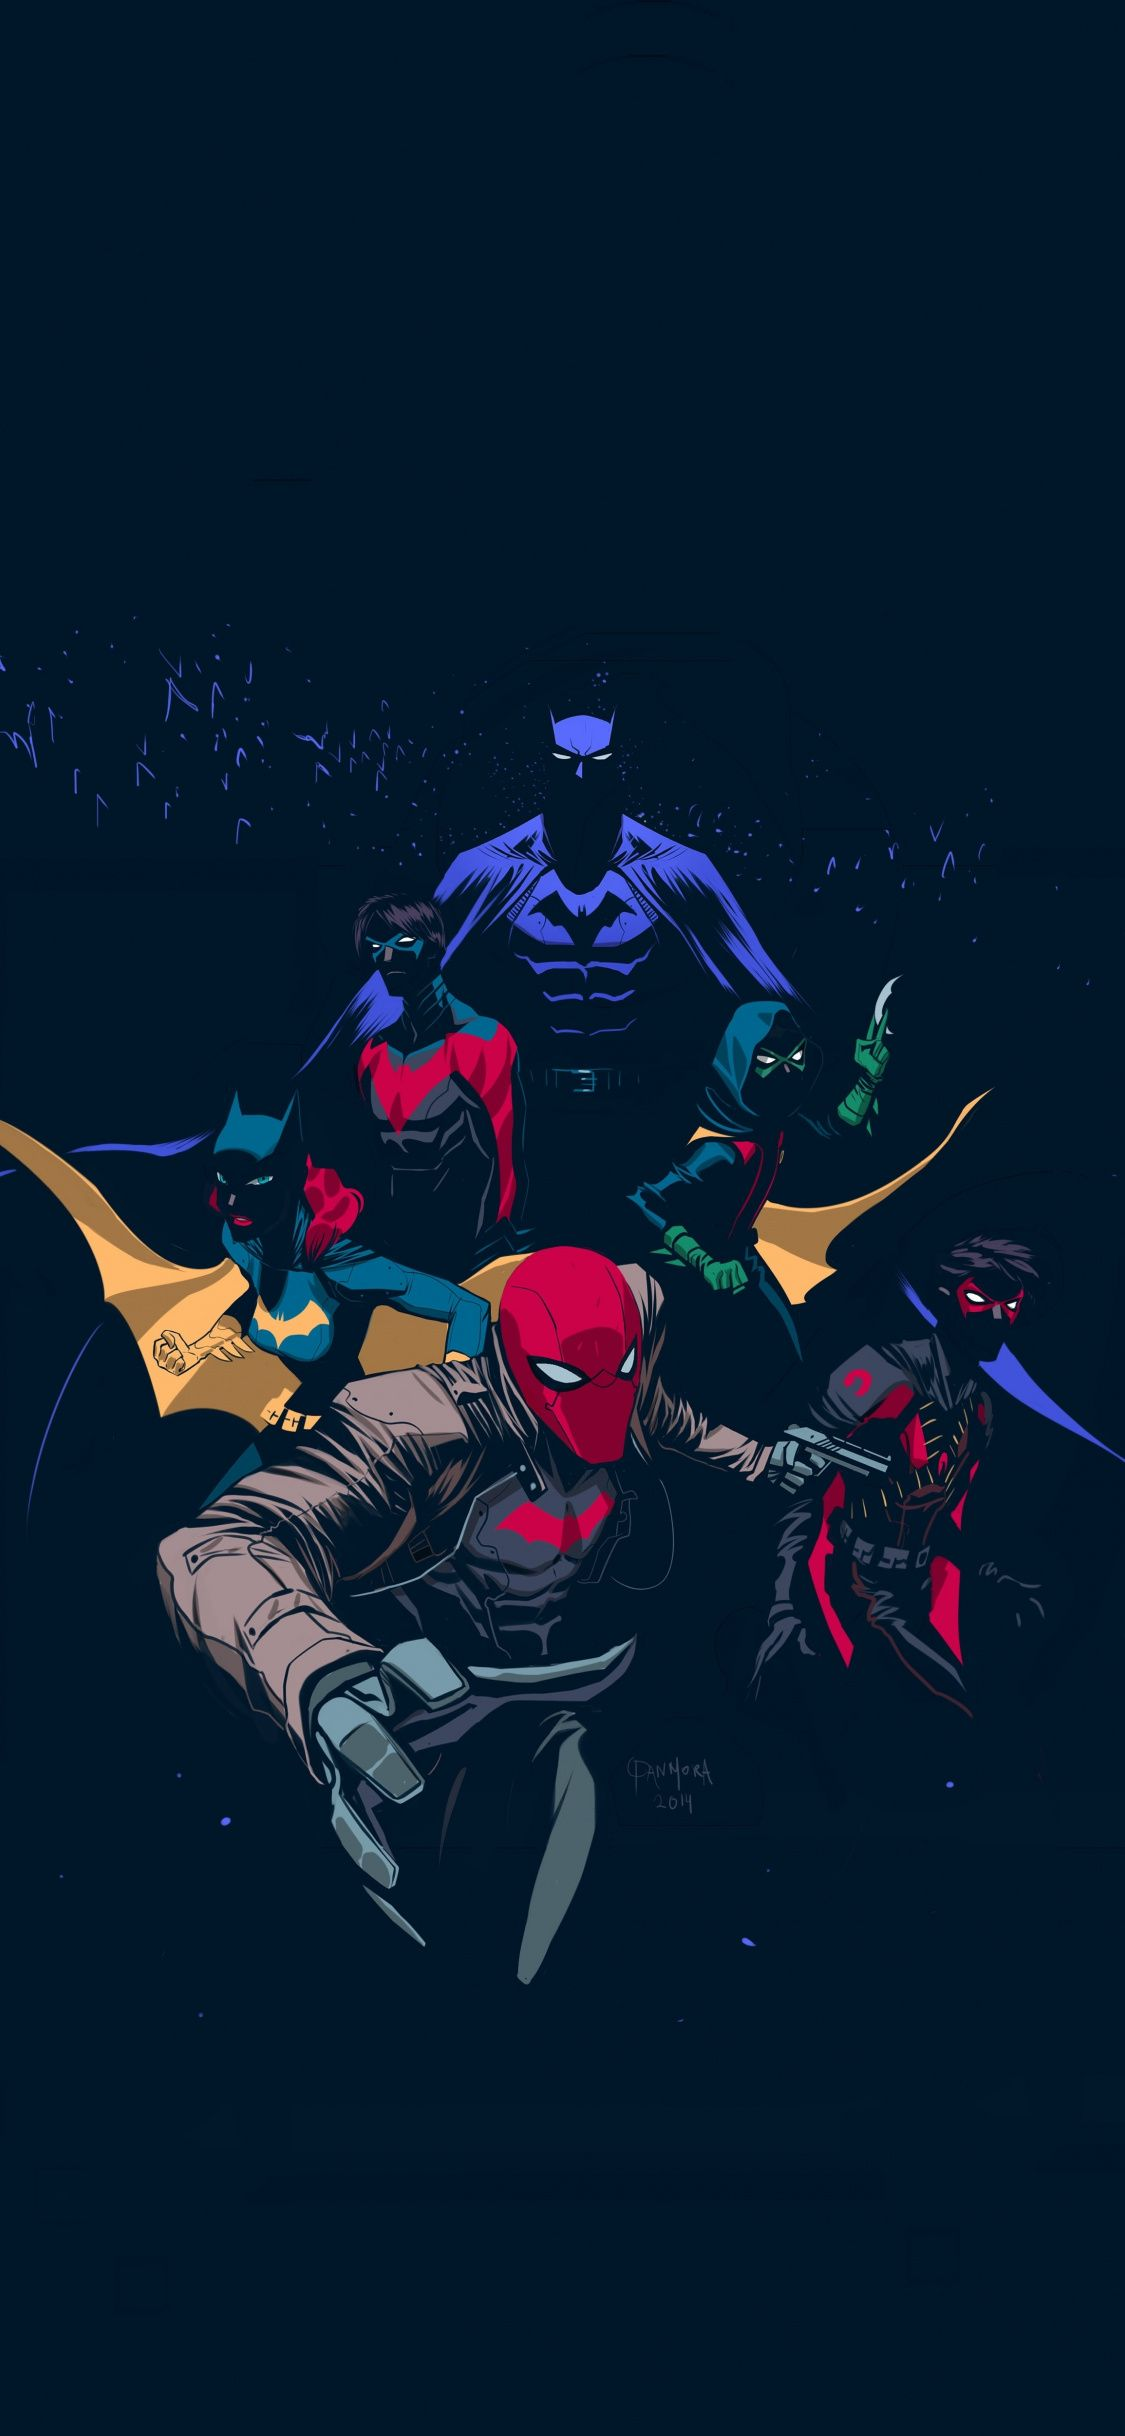 1125x2436 Download 1125x2436 wallpaper batfamily, robin, red hood ...